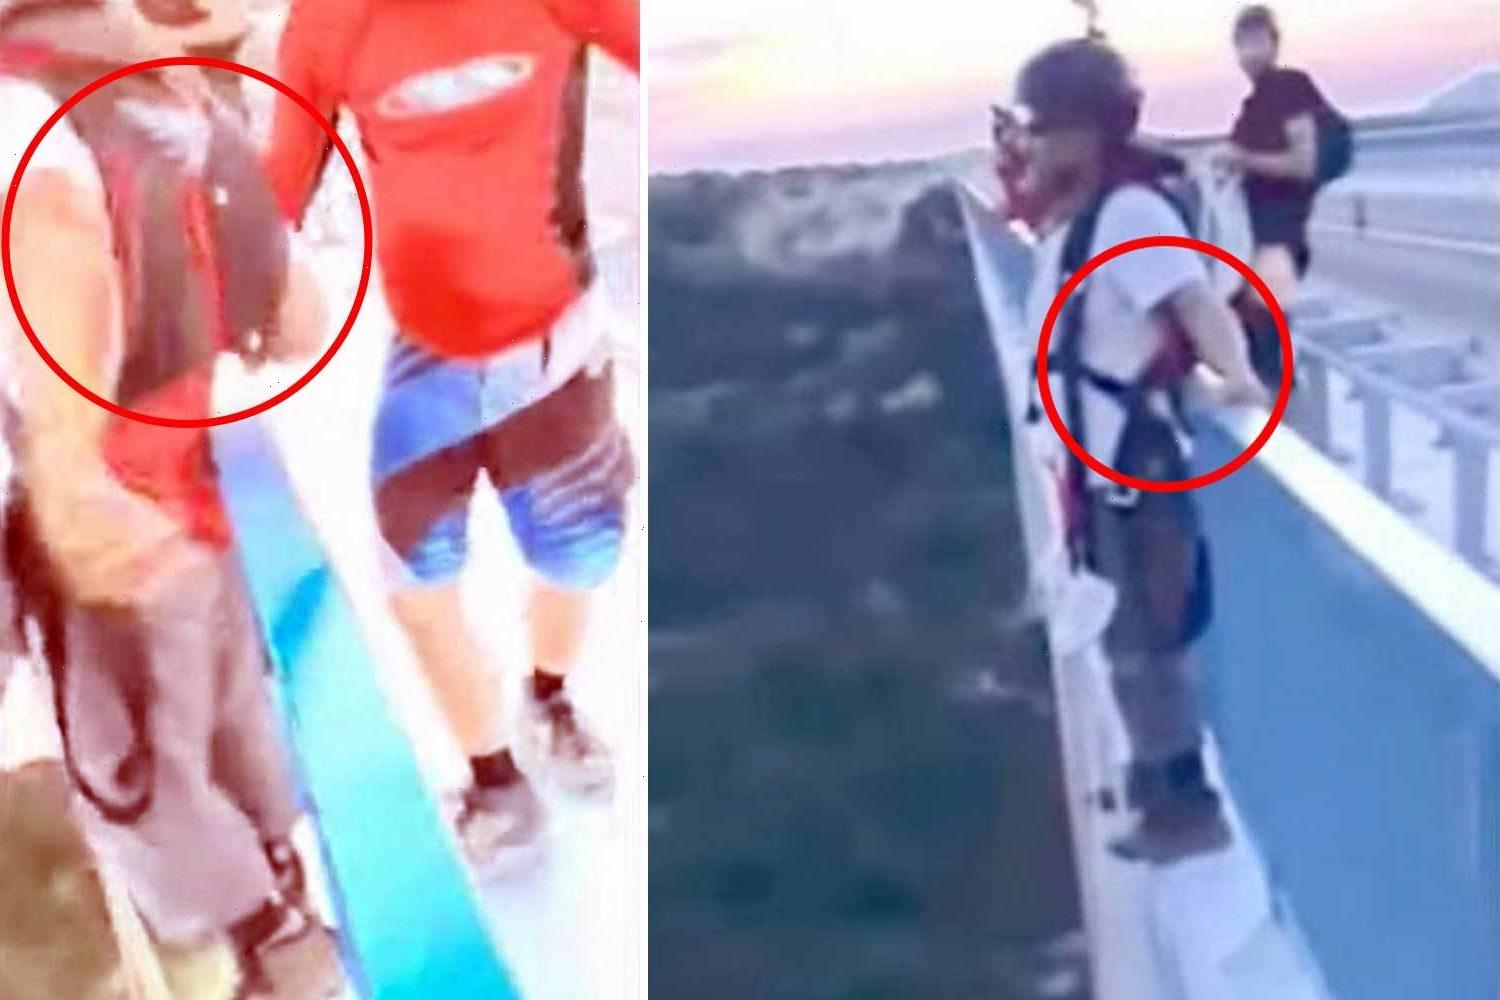 Heart-stopping moment man saves base jumper's life after spotting he WASN'T attached to parachute before plunge